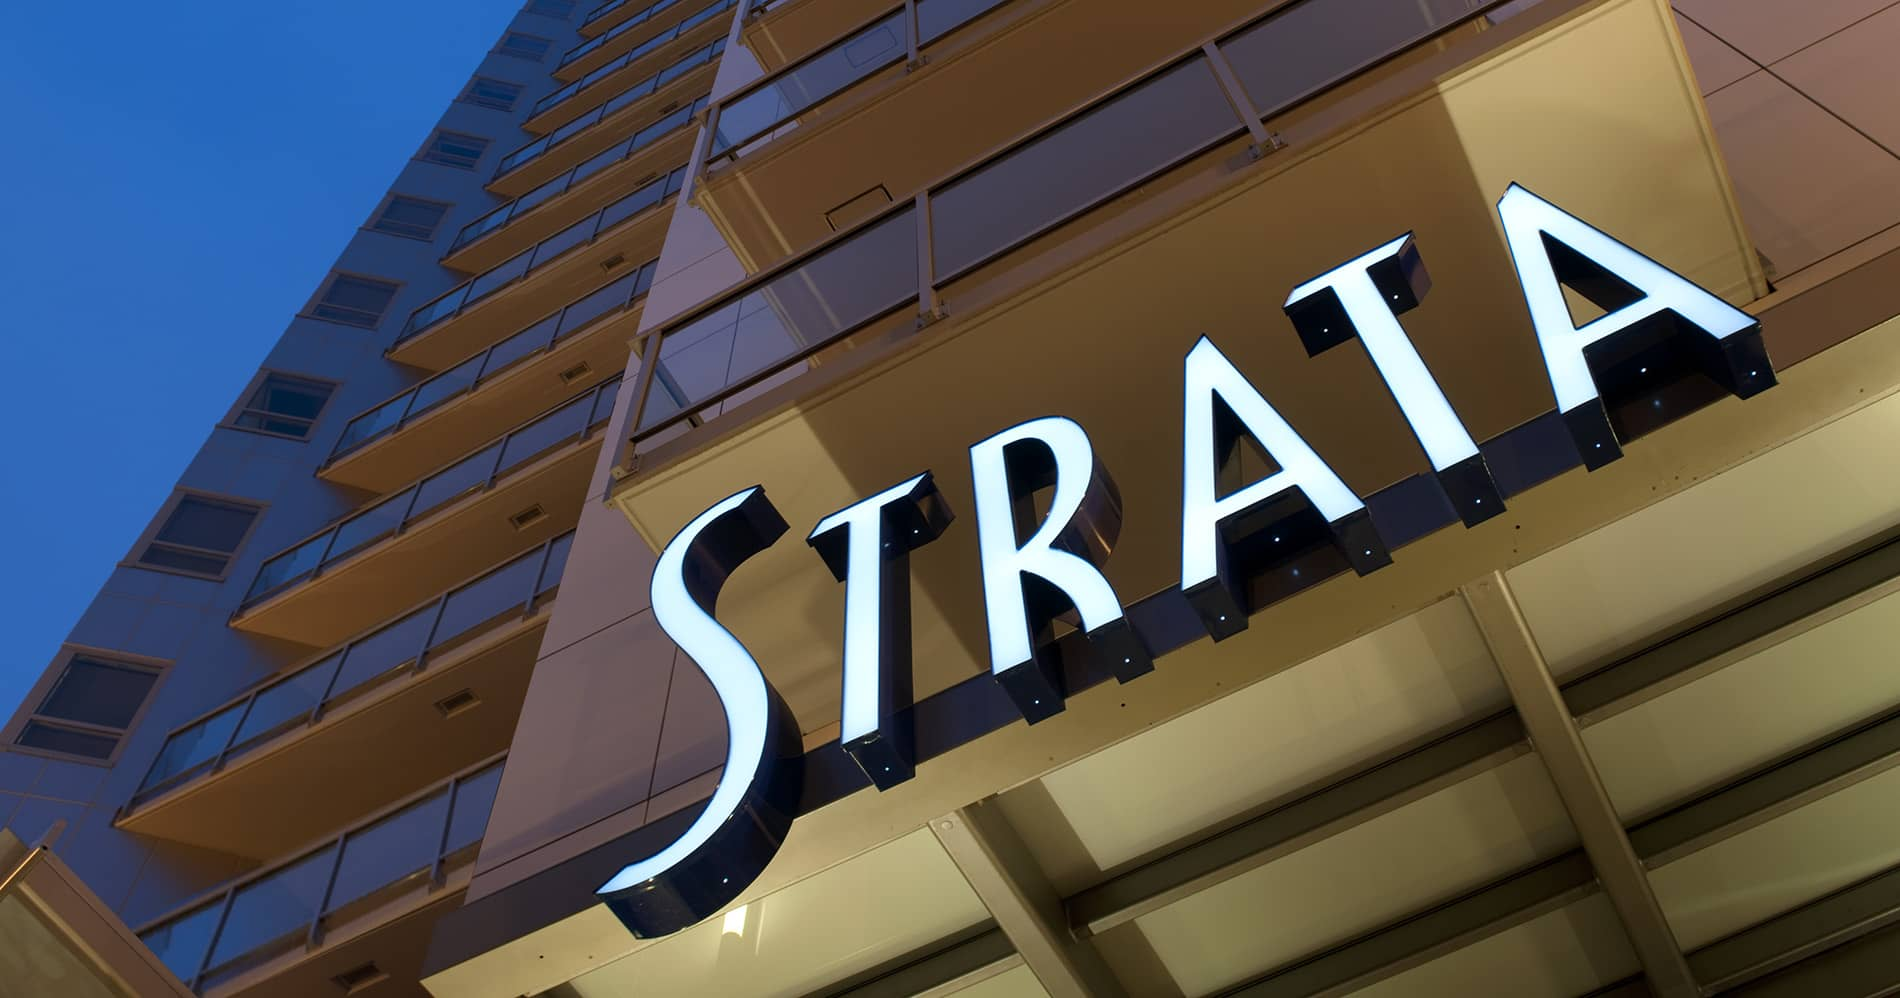 Strata Building Sign